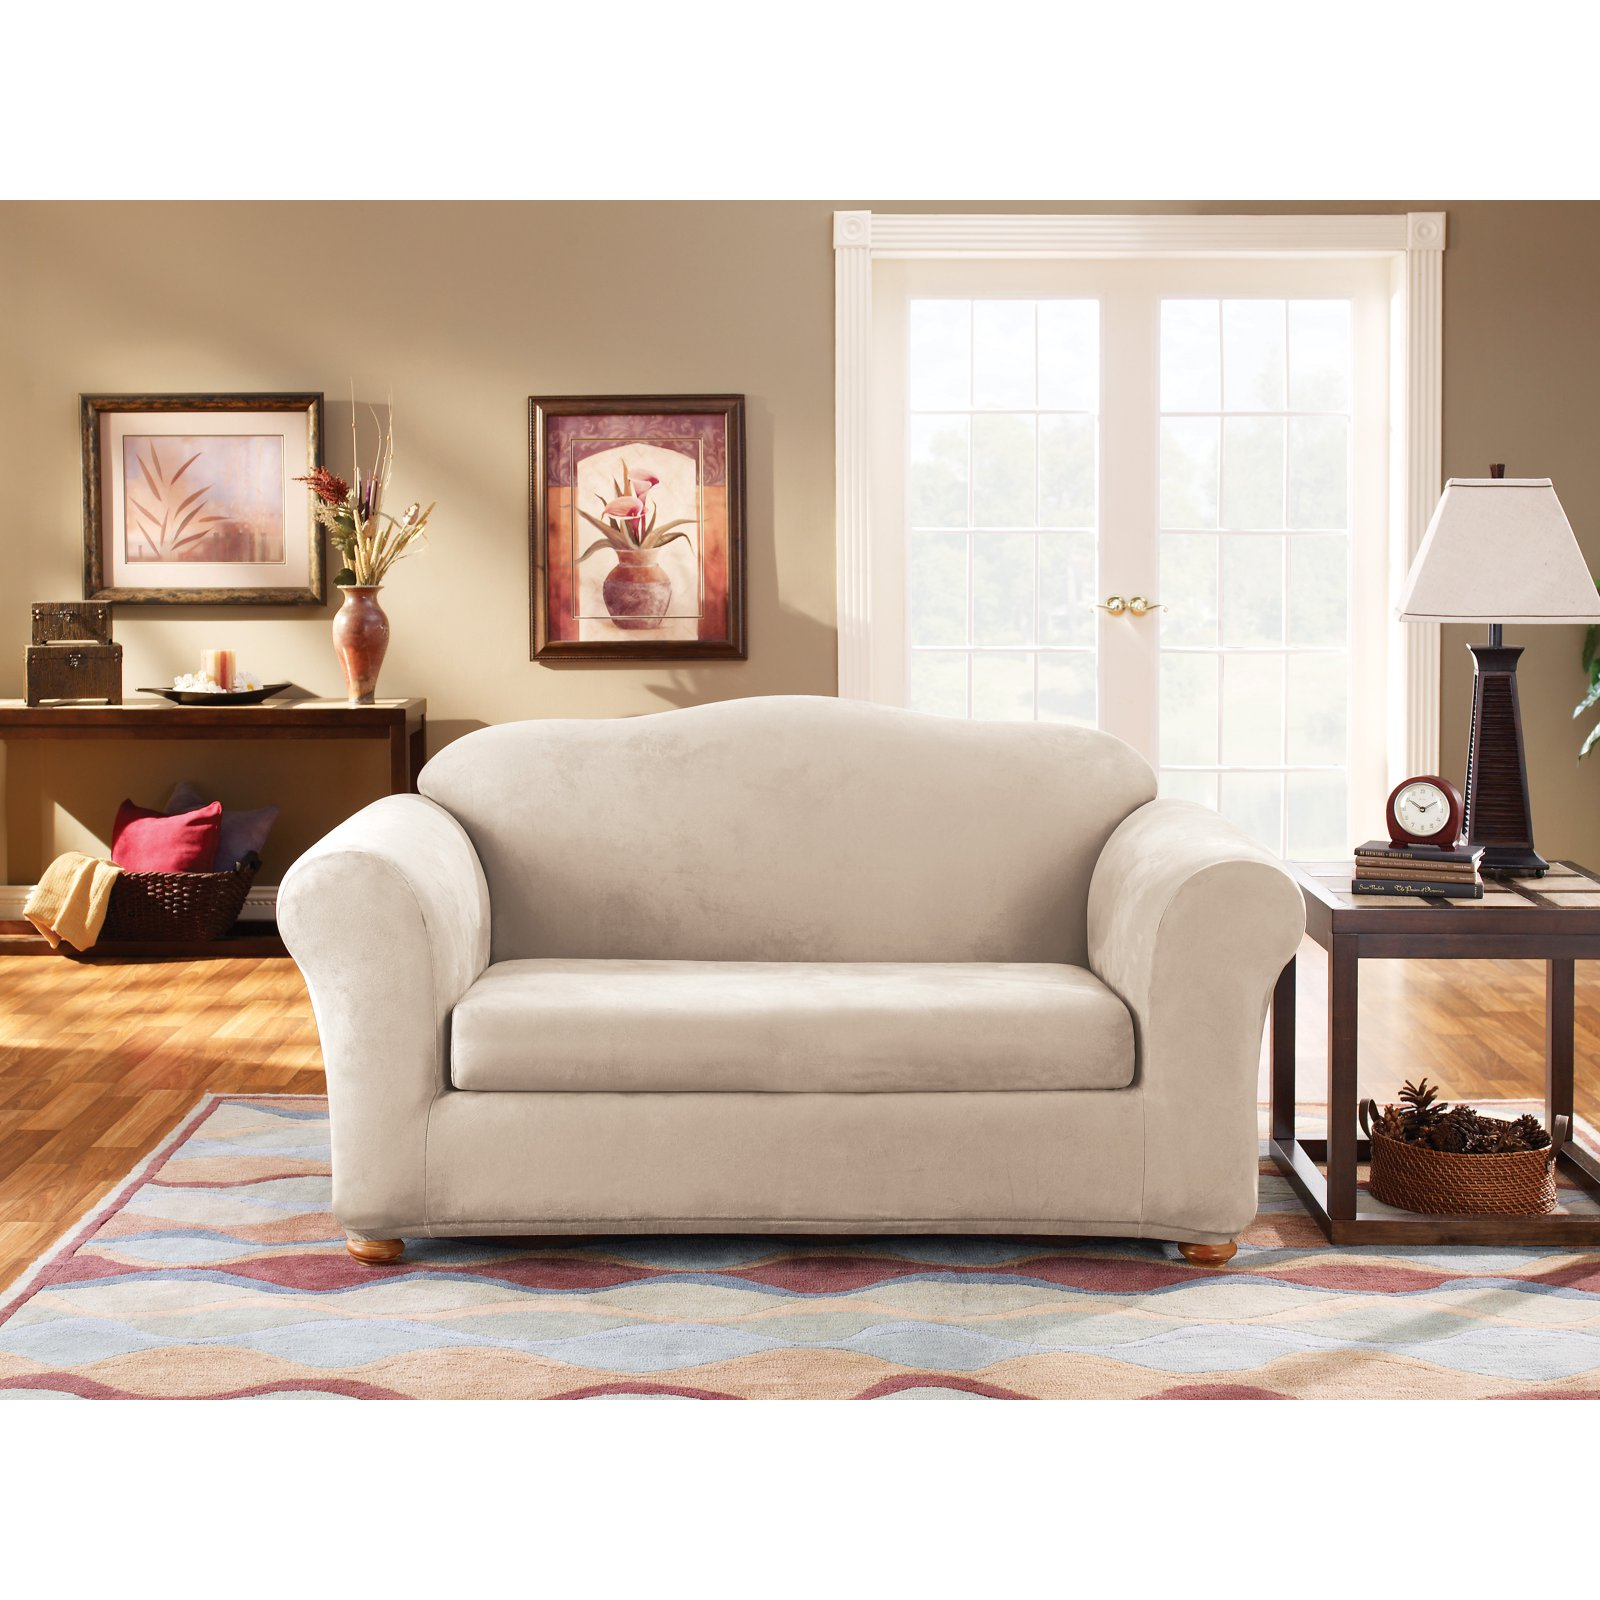 Sure Fit Suede Sofa Stretchable Slipcovers Walmart Com